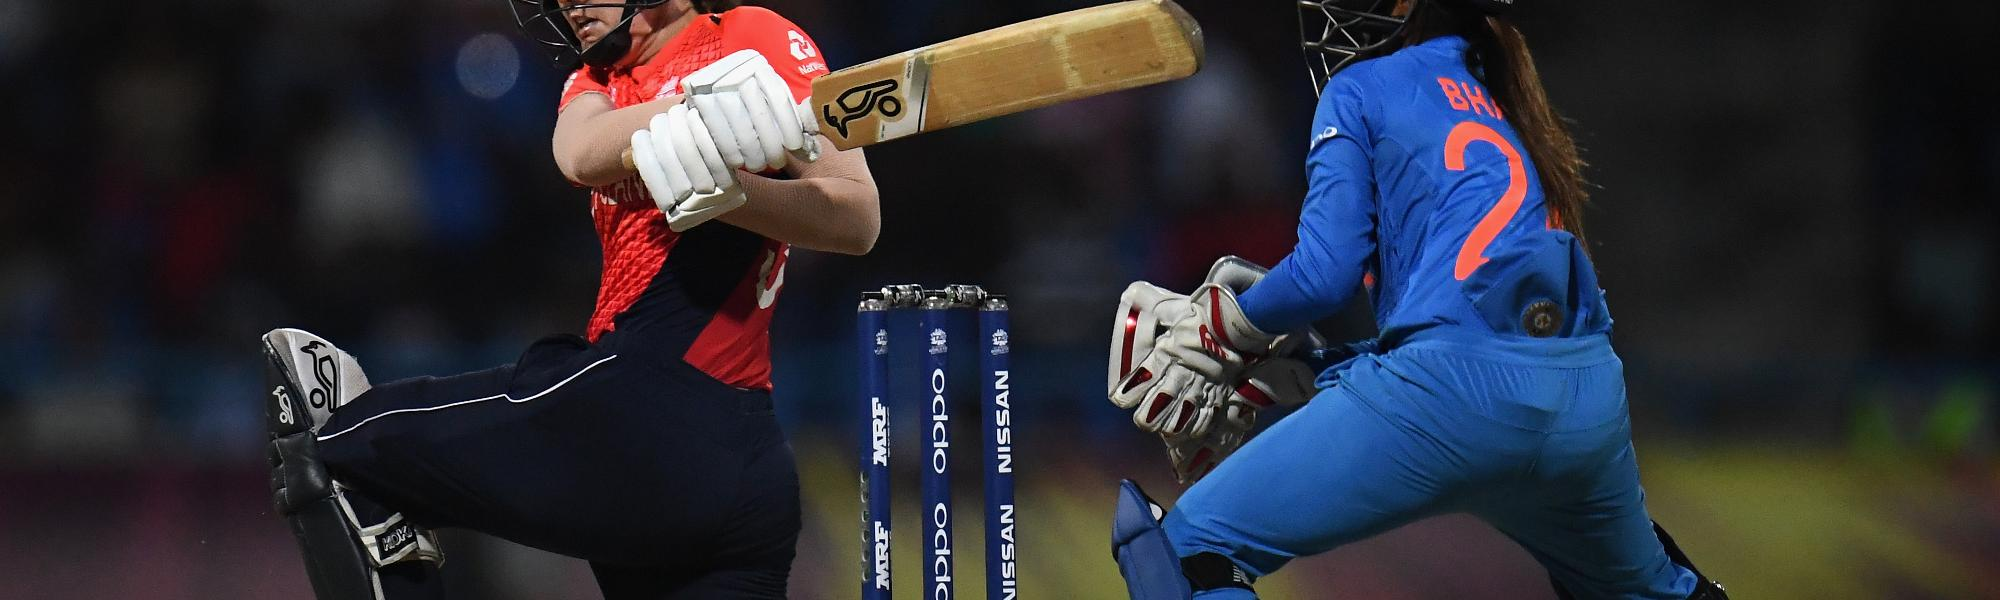 Natalie Sciver of England bats during the ICC Women's World T20 2018 Semi-Final match between England and India at Sir Viv Richards Cricket Ground on November 22, 2018 in Antigua, Antigua and Barbuda.